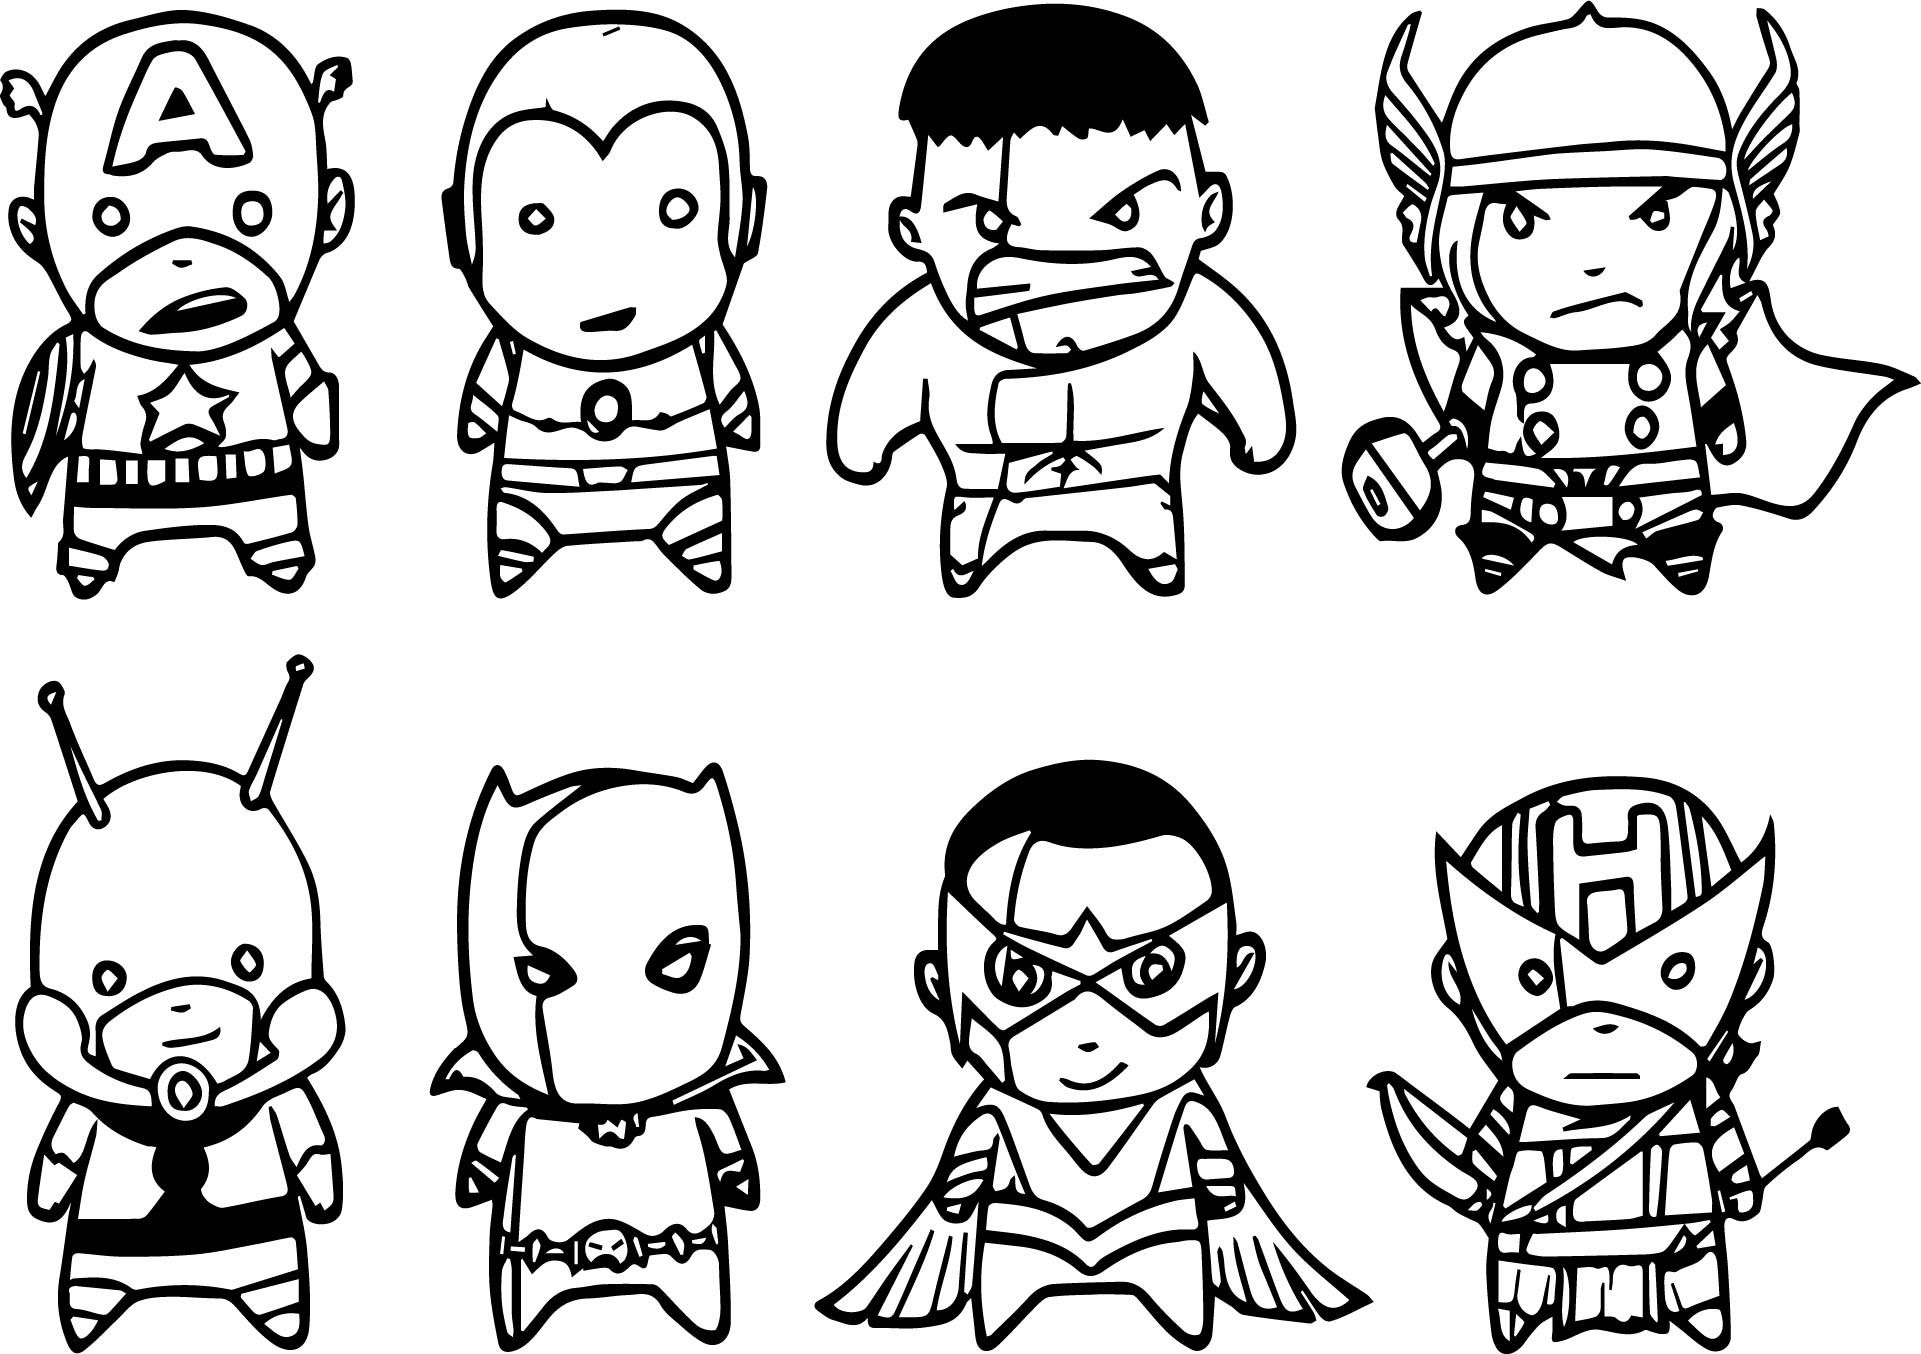 awesome Avenger Chibs Assemble